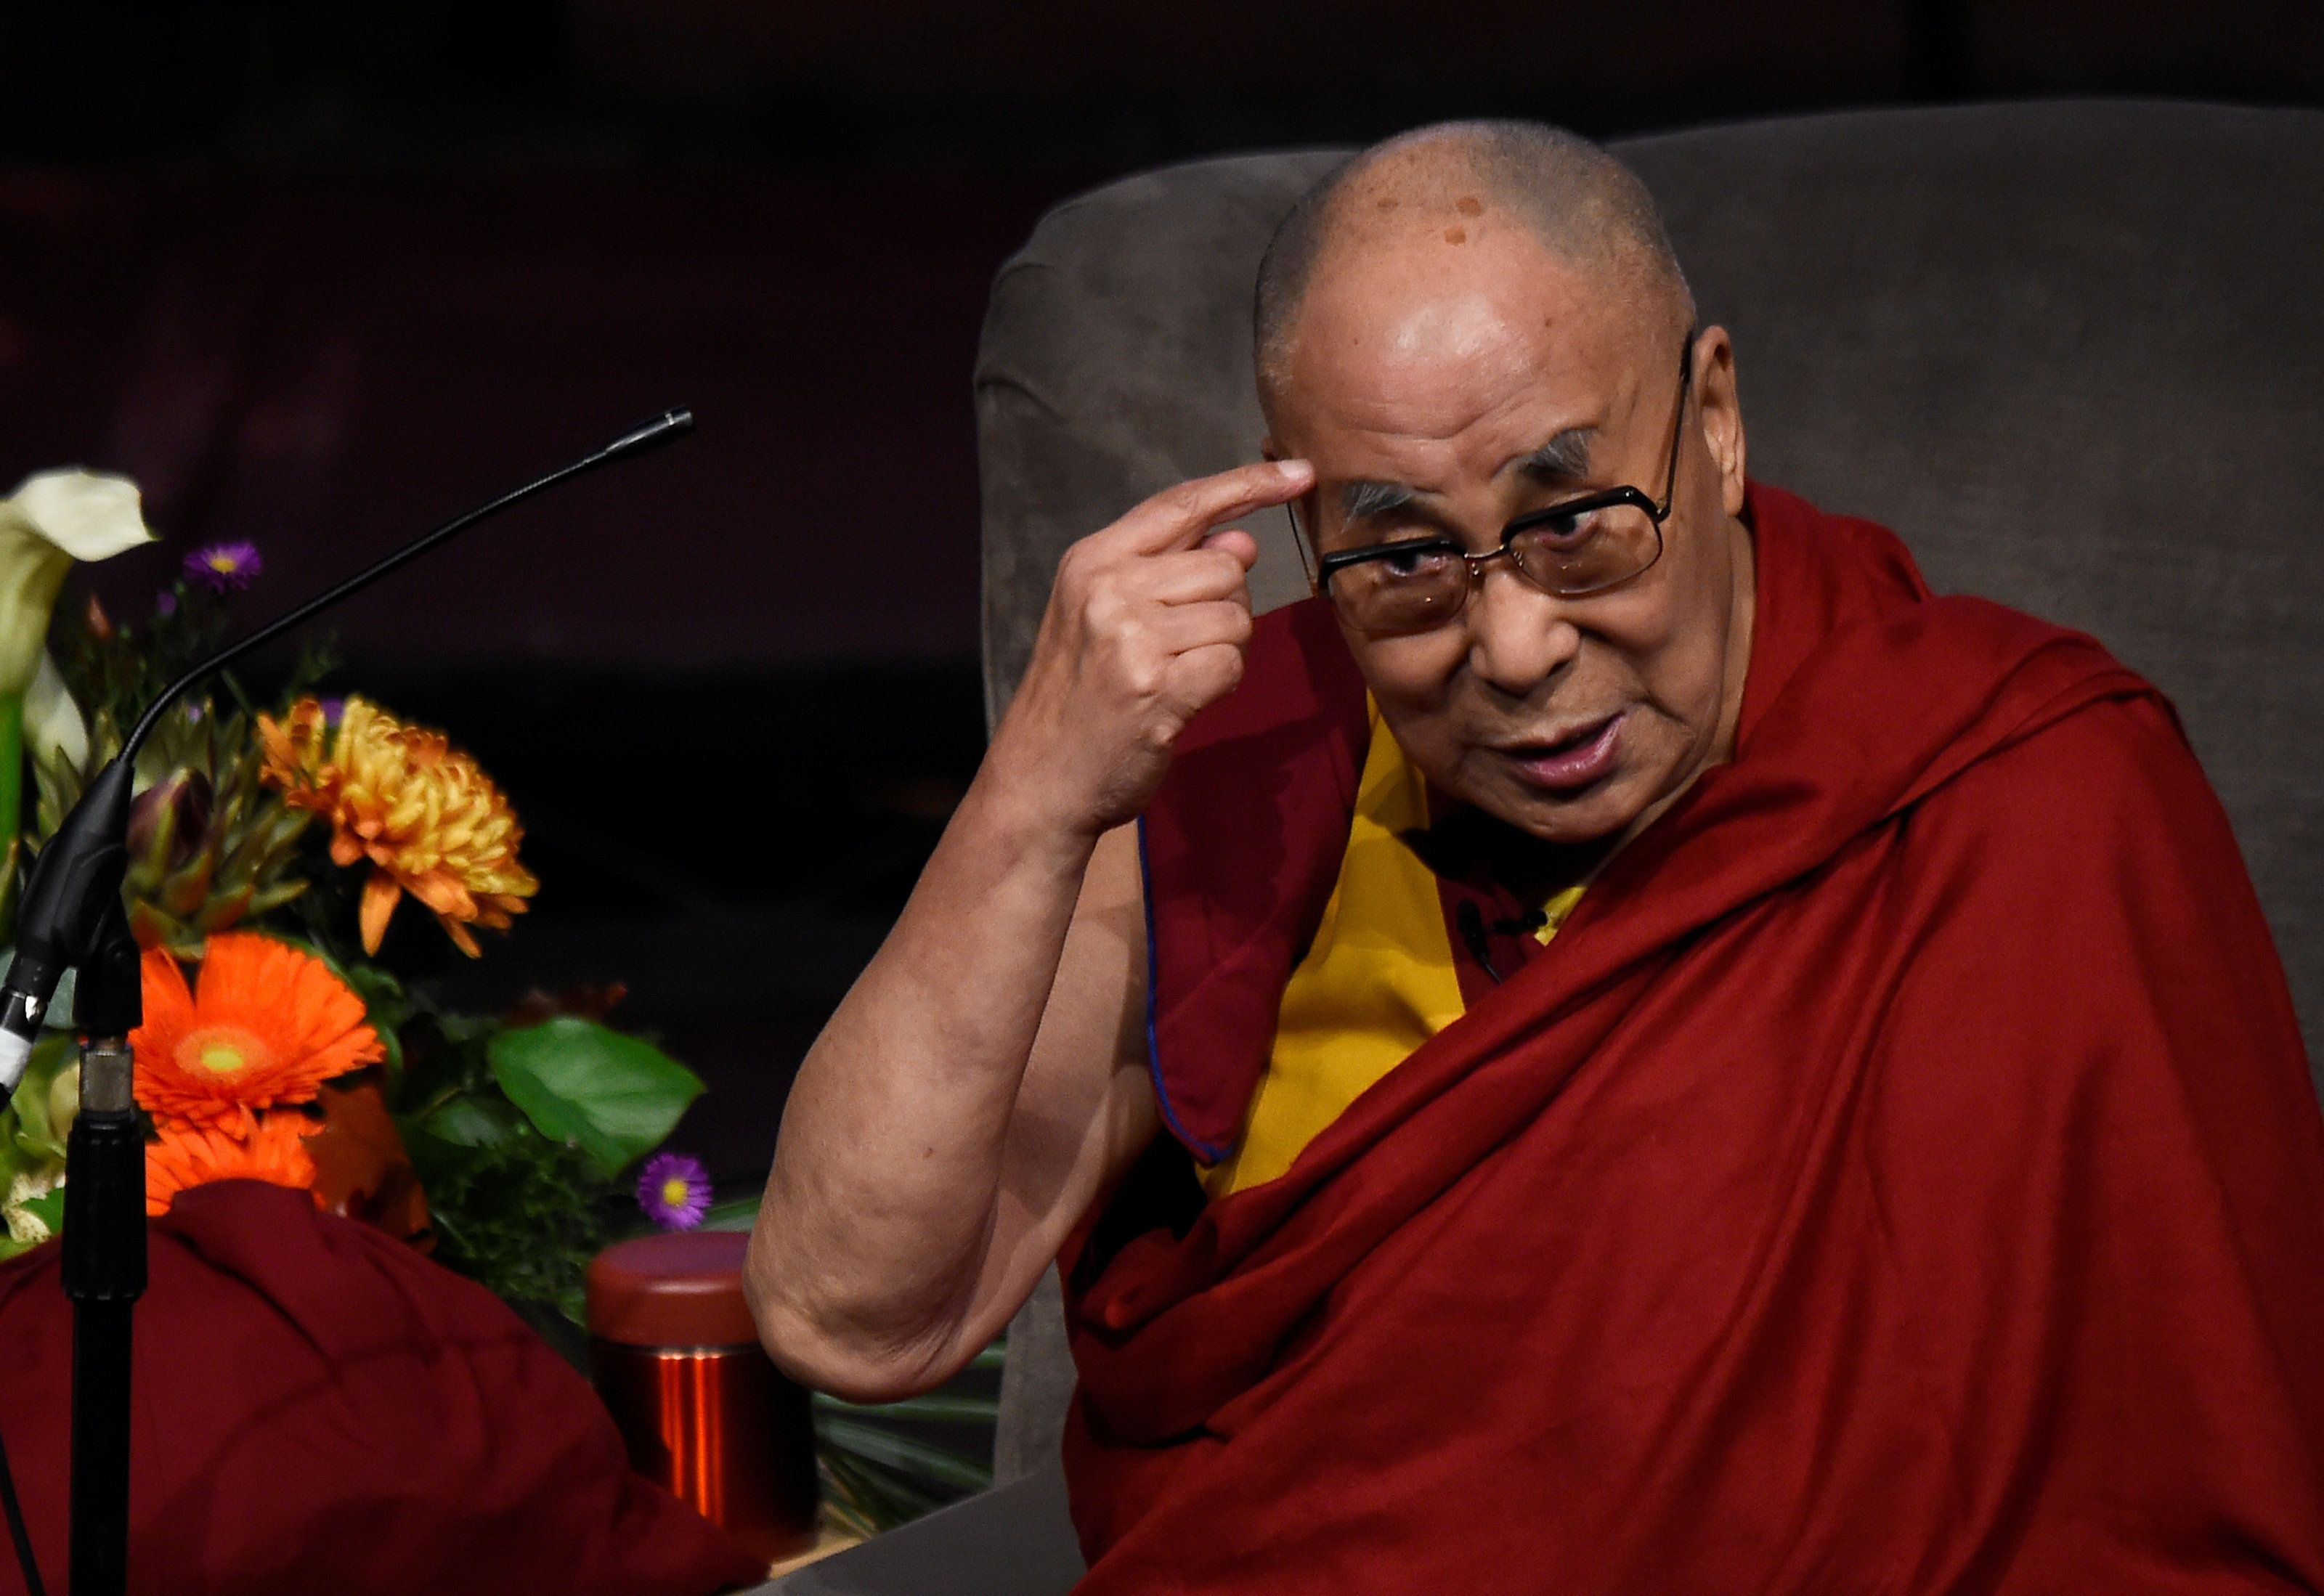 Mercedes-Benz apologises to Chinese consumers for quoting Dalai Lama